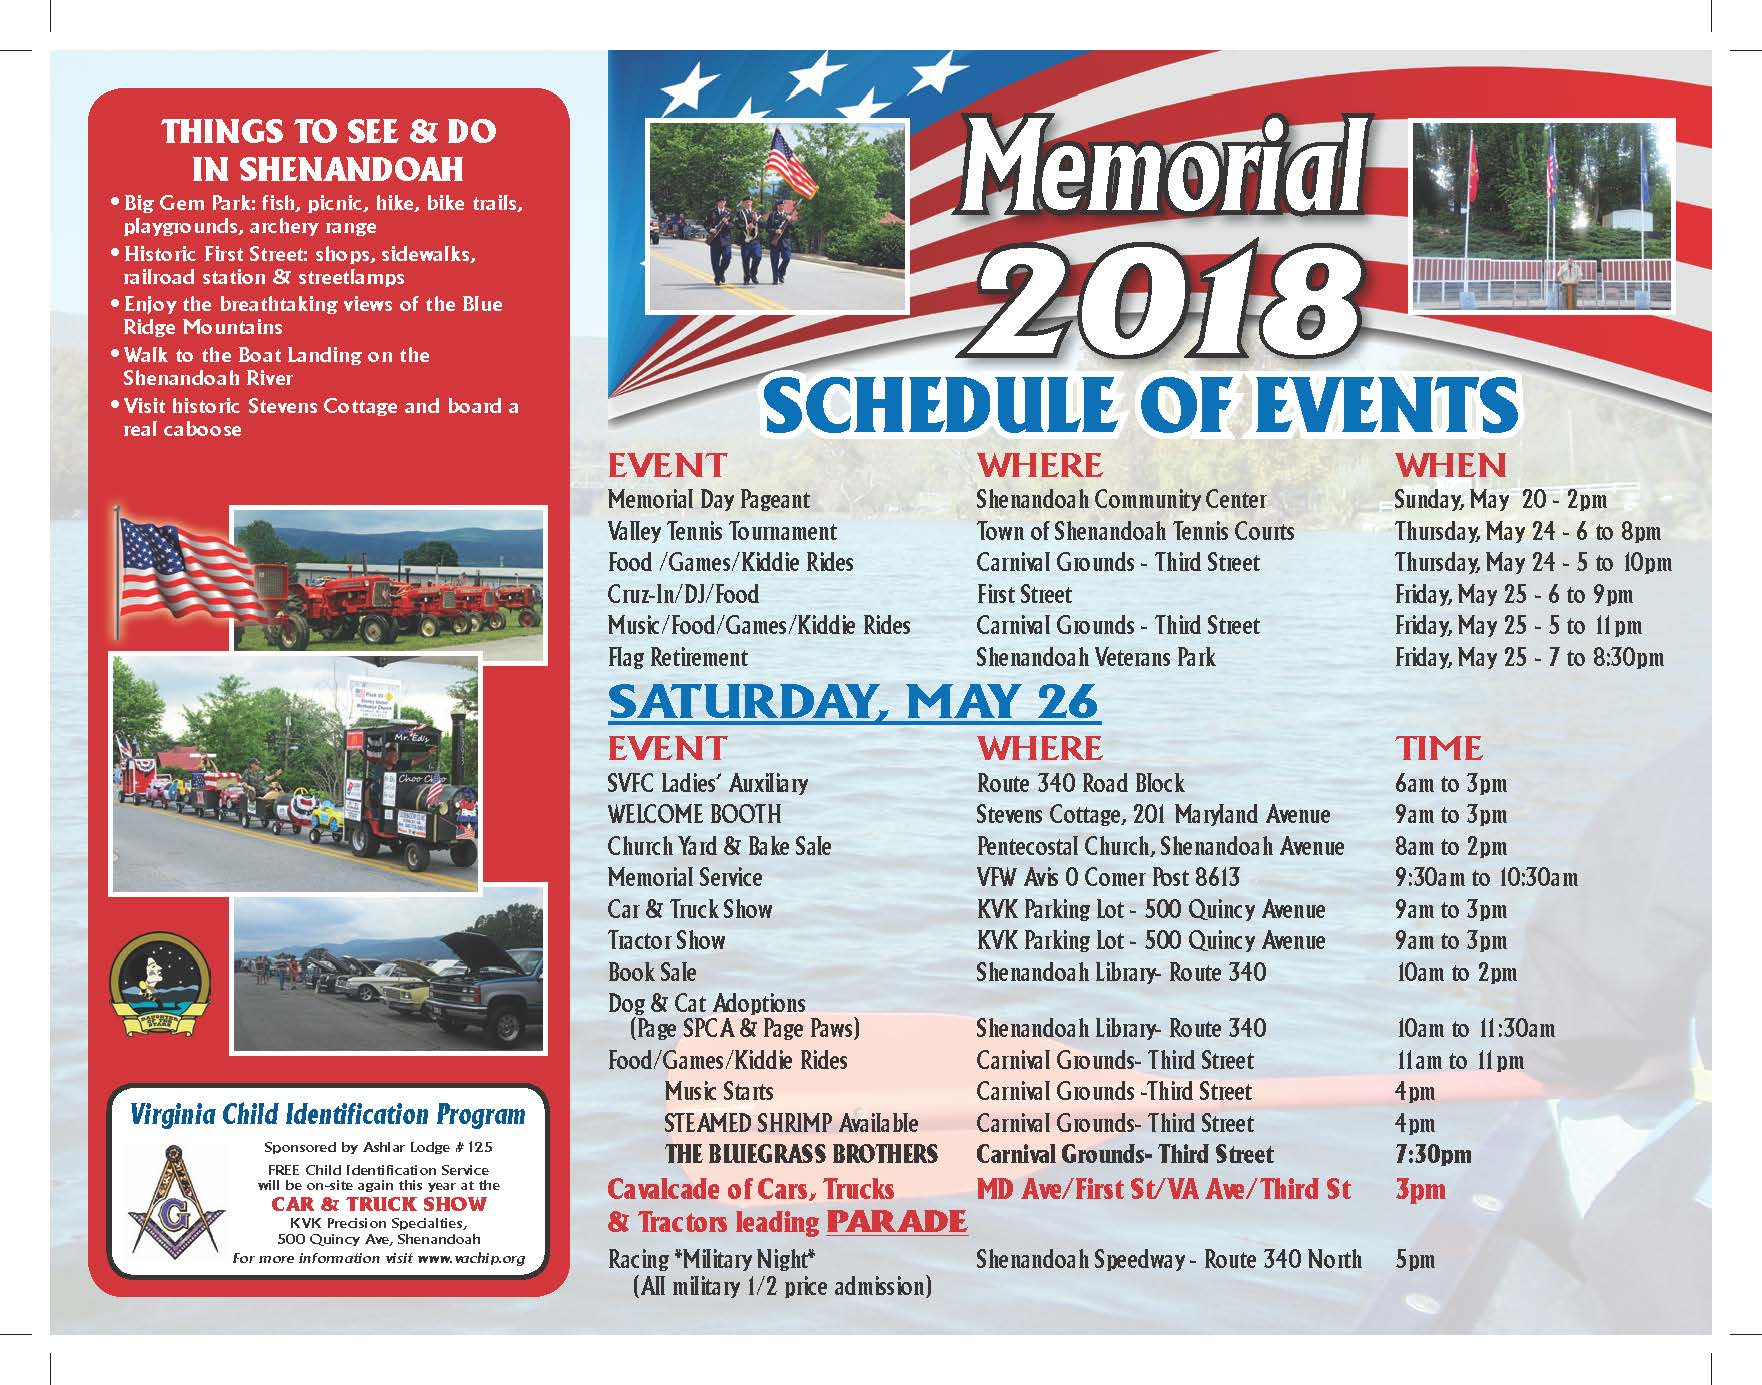 21st Annual Memorial Festival And Parade